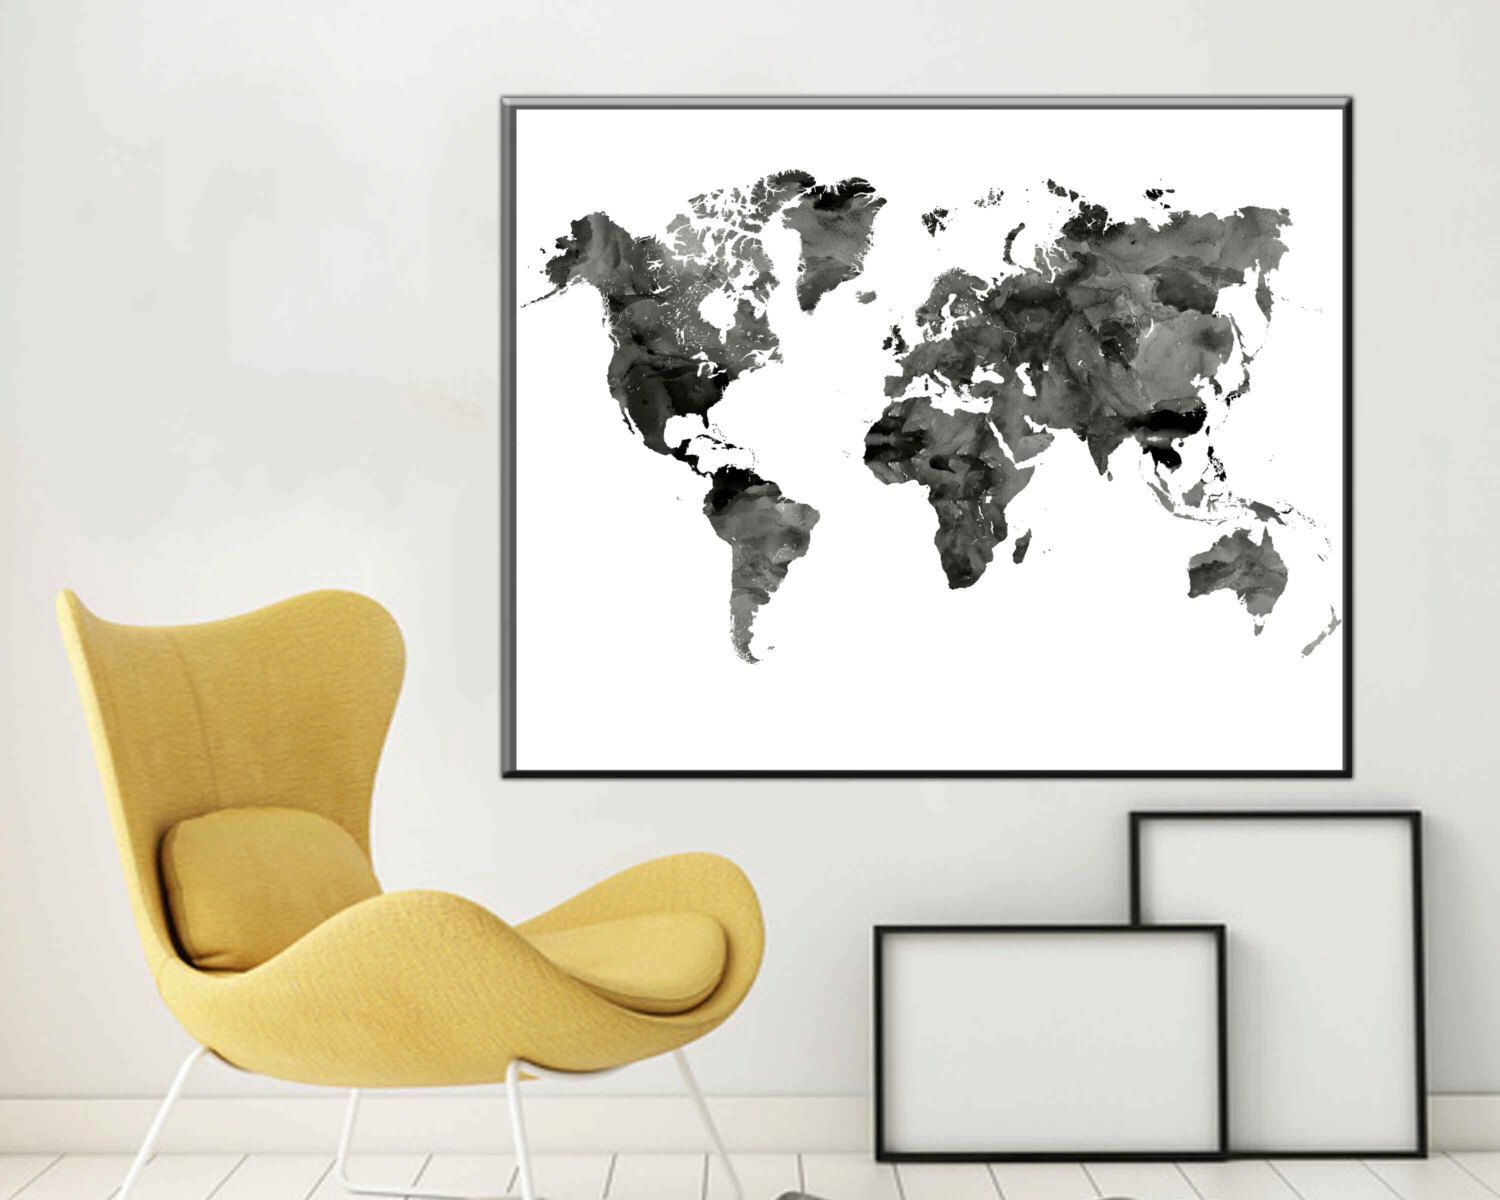 Black and white world map monochrome art world map art world map black and white world map monochrome art world map art world map wall art black and gumiabroncs Image collections